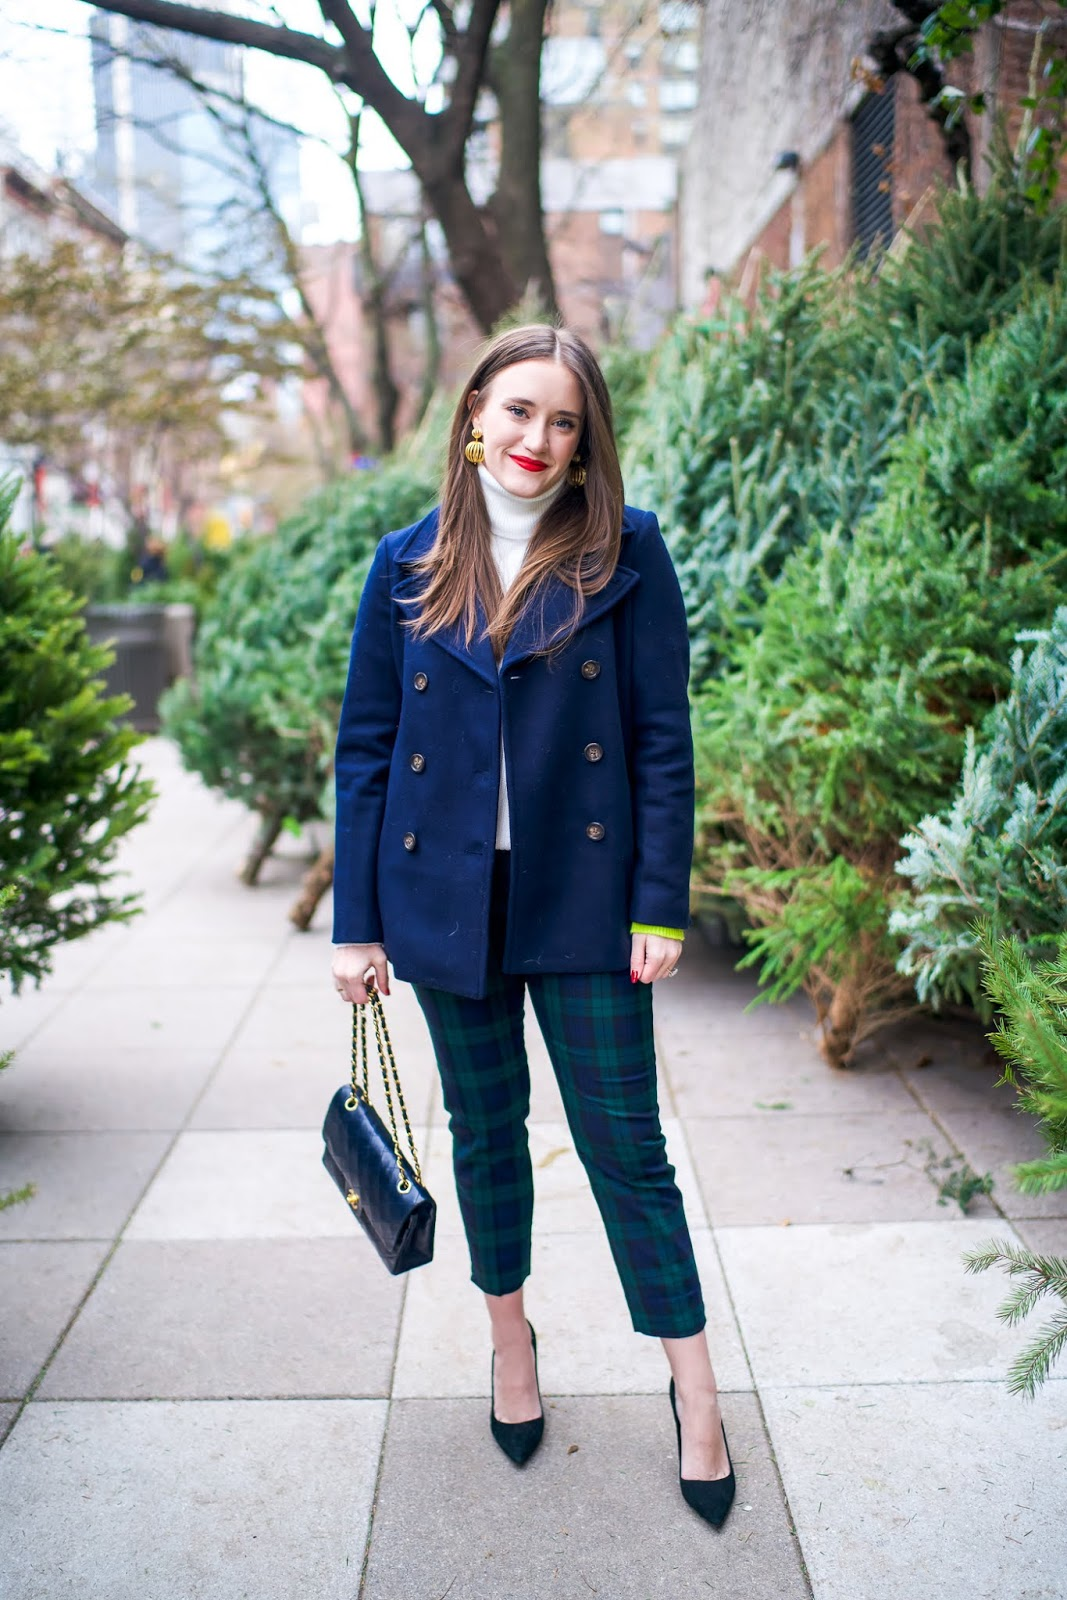 A Festive Holiday Office Look New York City Fashion And Lifestyle